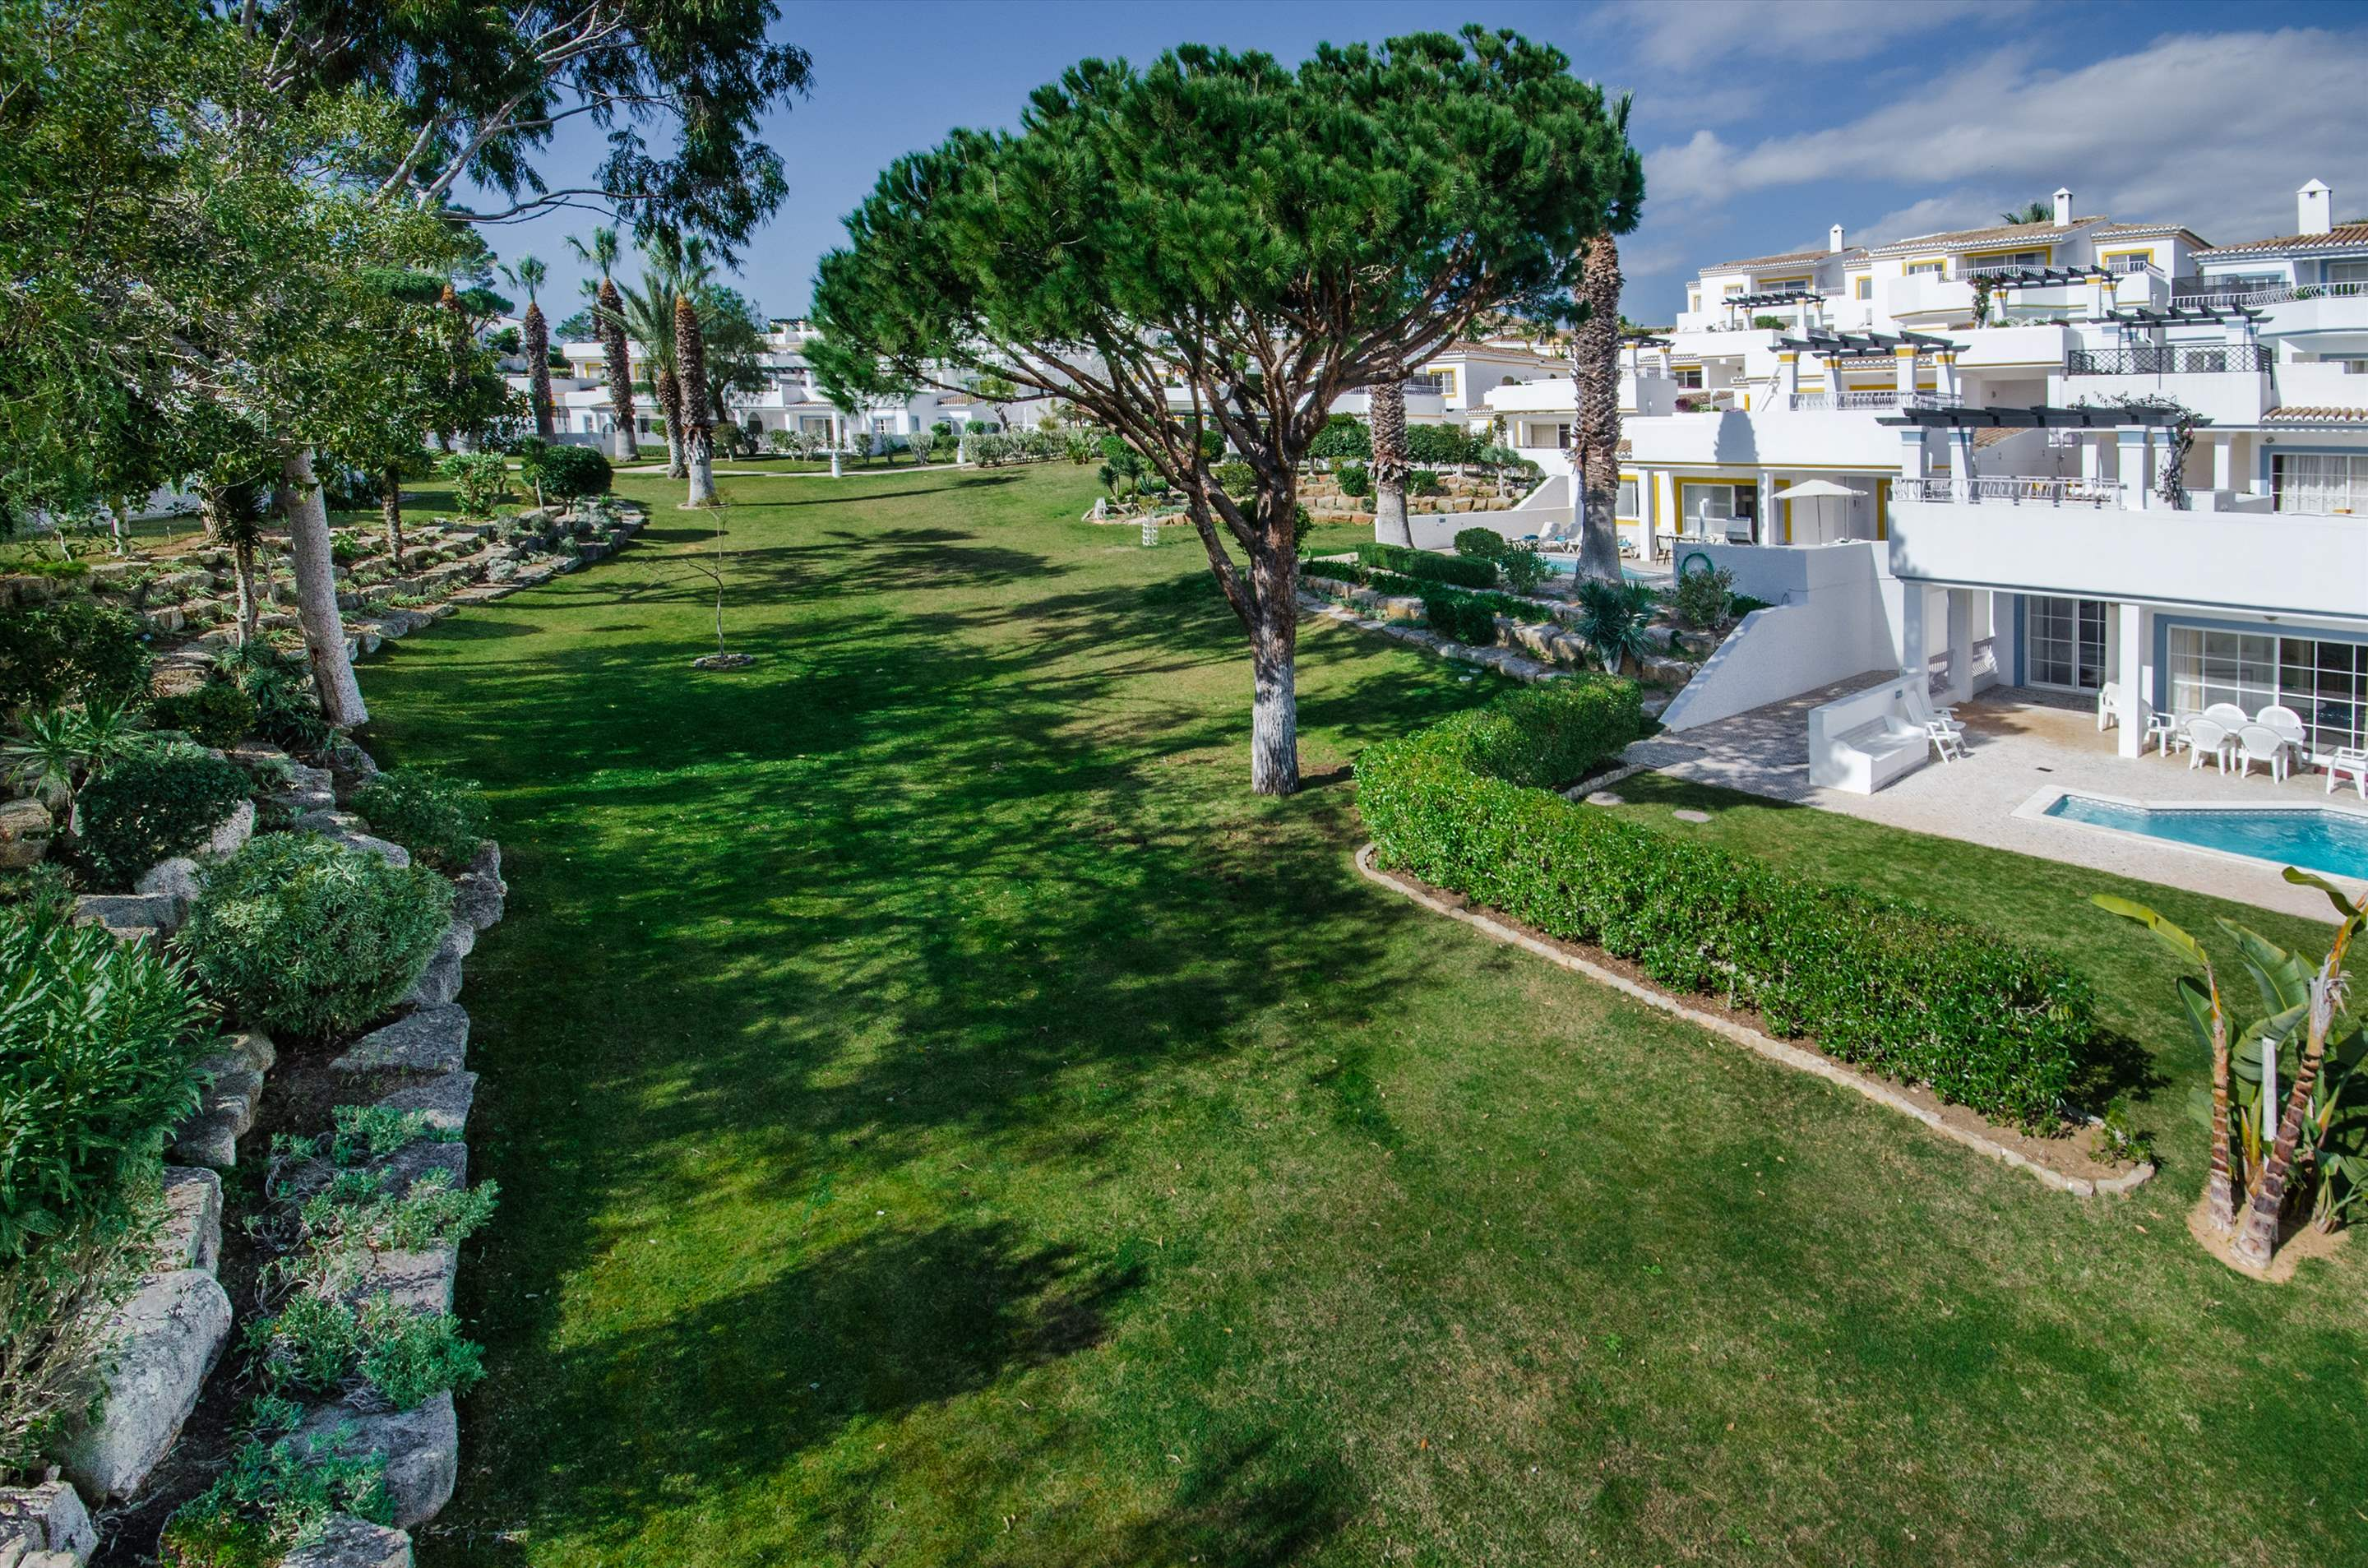 Four Seasons Fairways 3 Bed Hillside Apartment, Thursday Arrival, 3 bedroom villa in Four Seasons Fairways, Algarve Photo #3